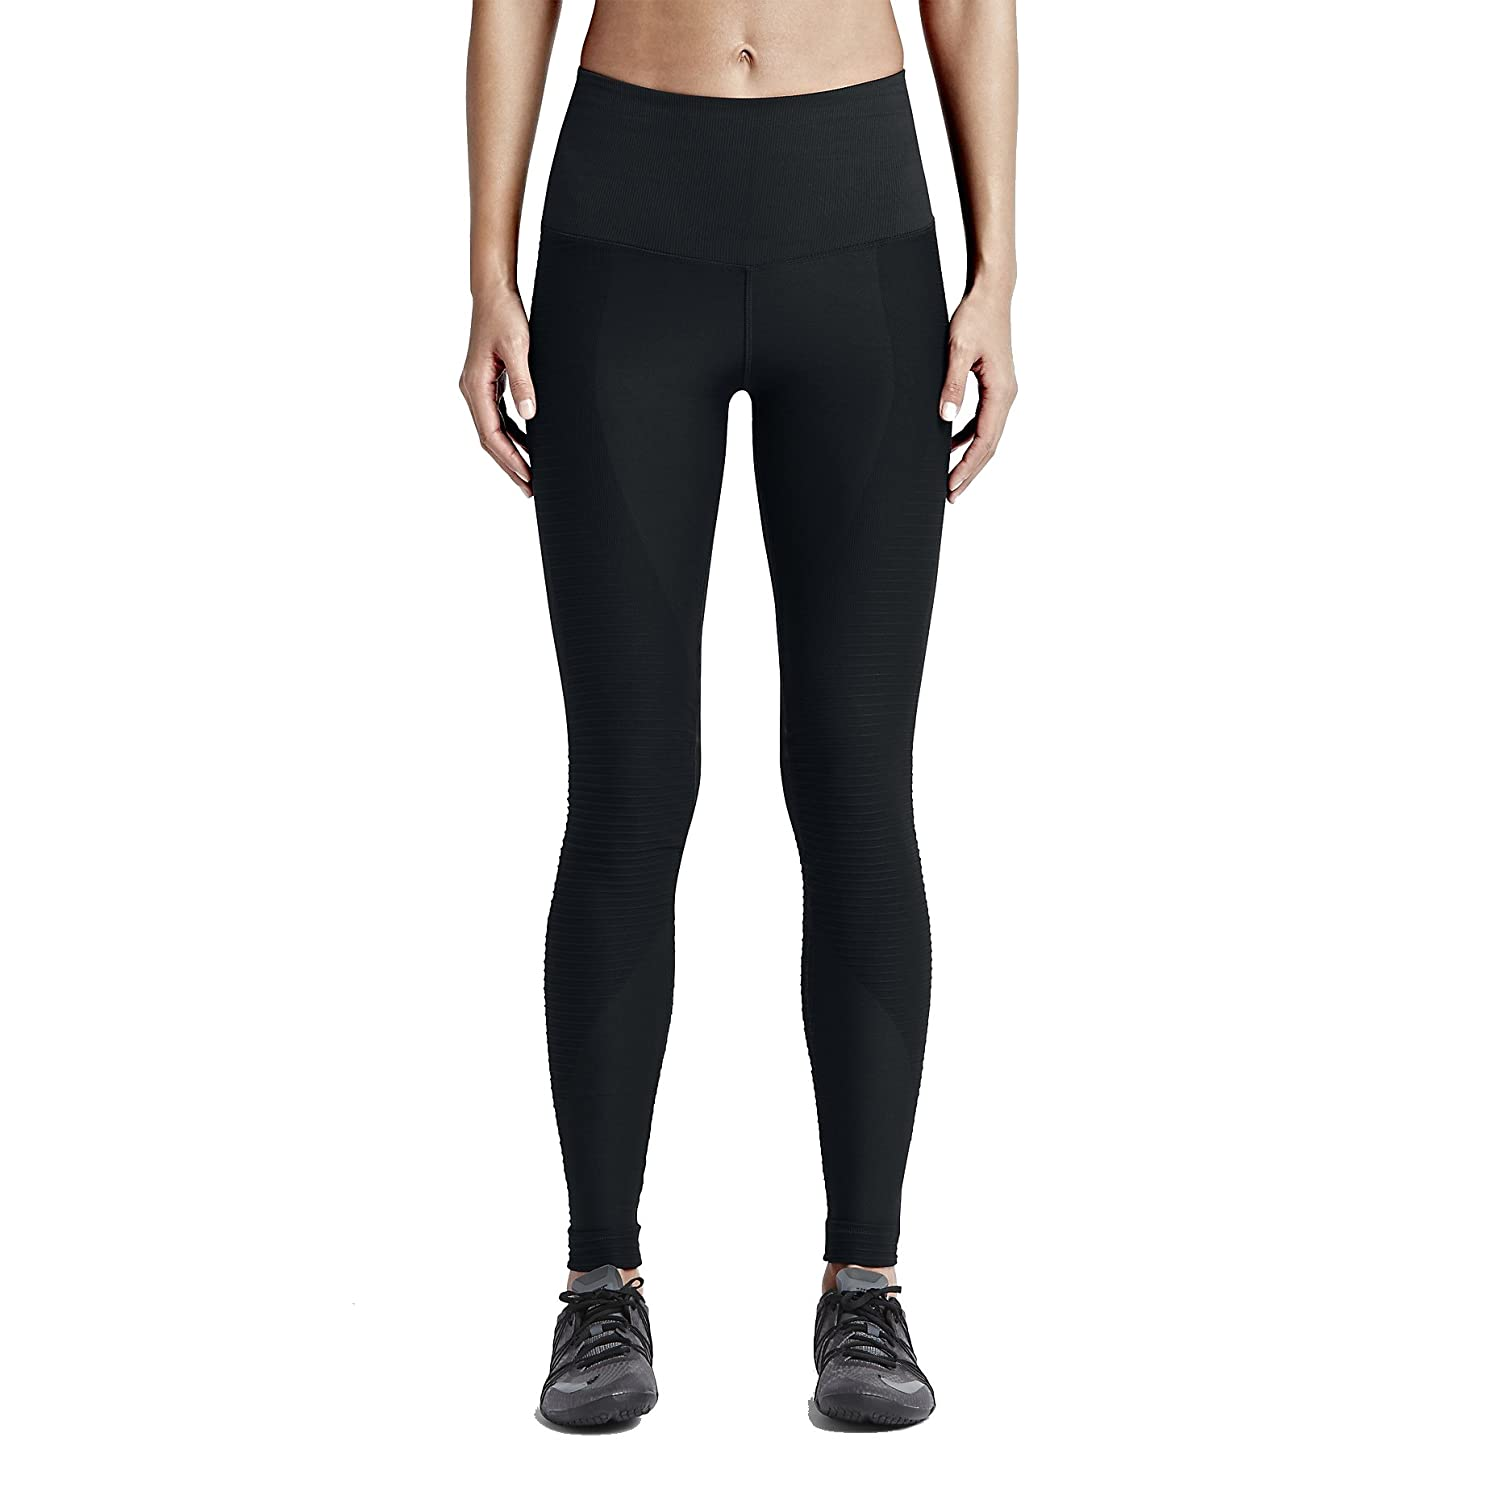 7deffdf6f2187 Amazon.com: Nike Women's Zoned Sculpt Training Tights Black (Medium):  Sports & Outdoors